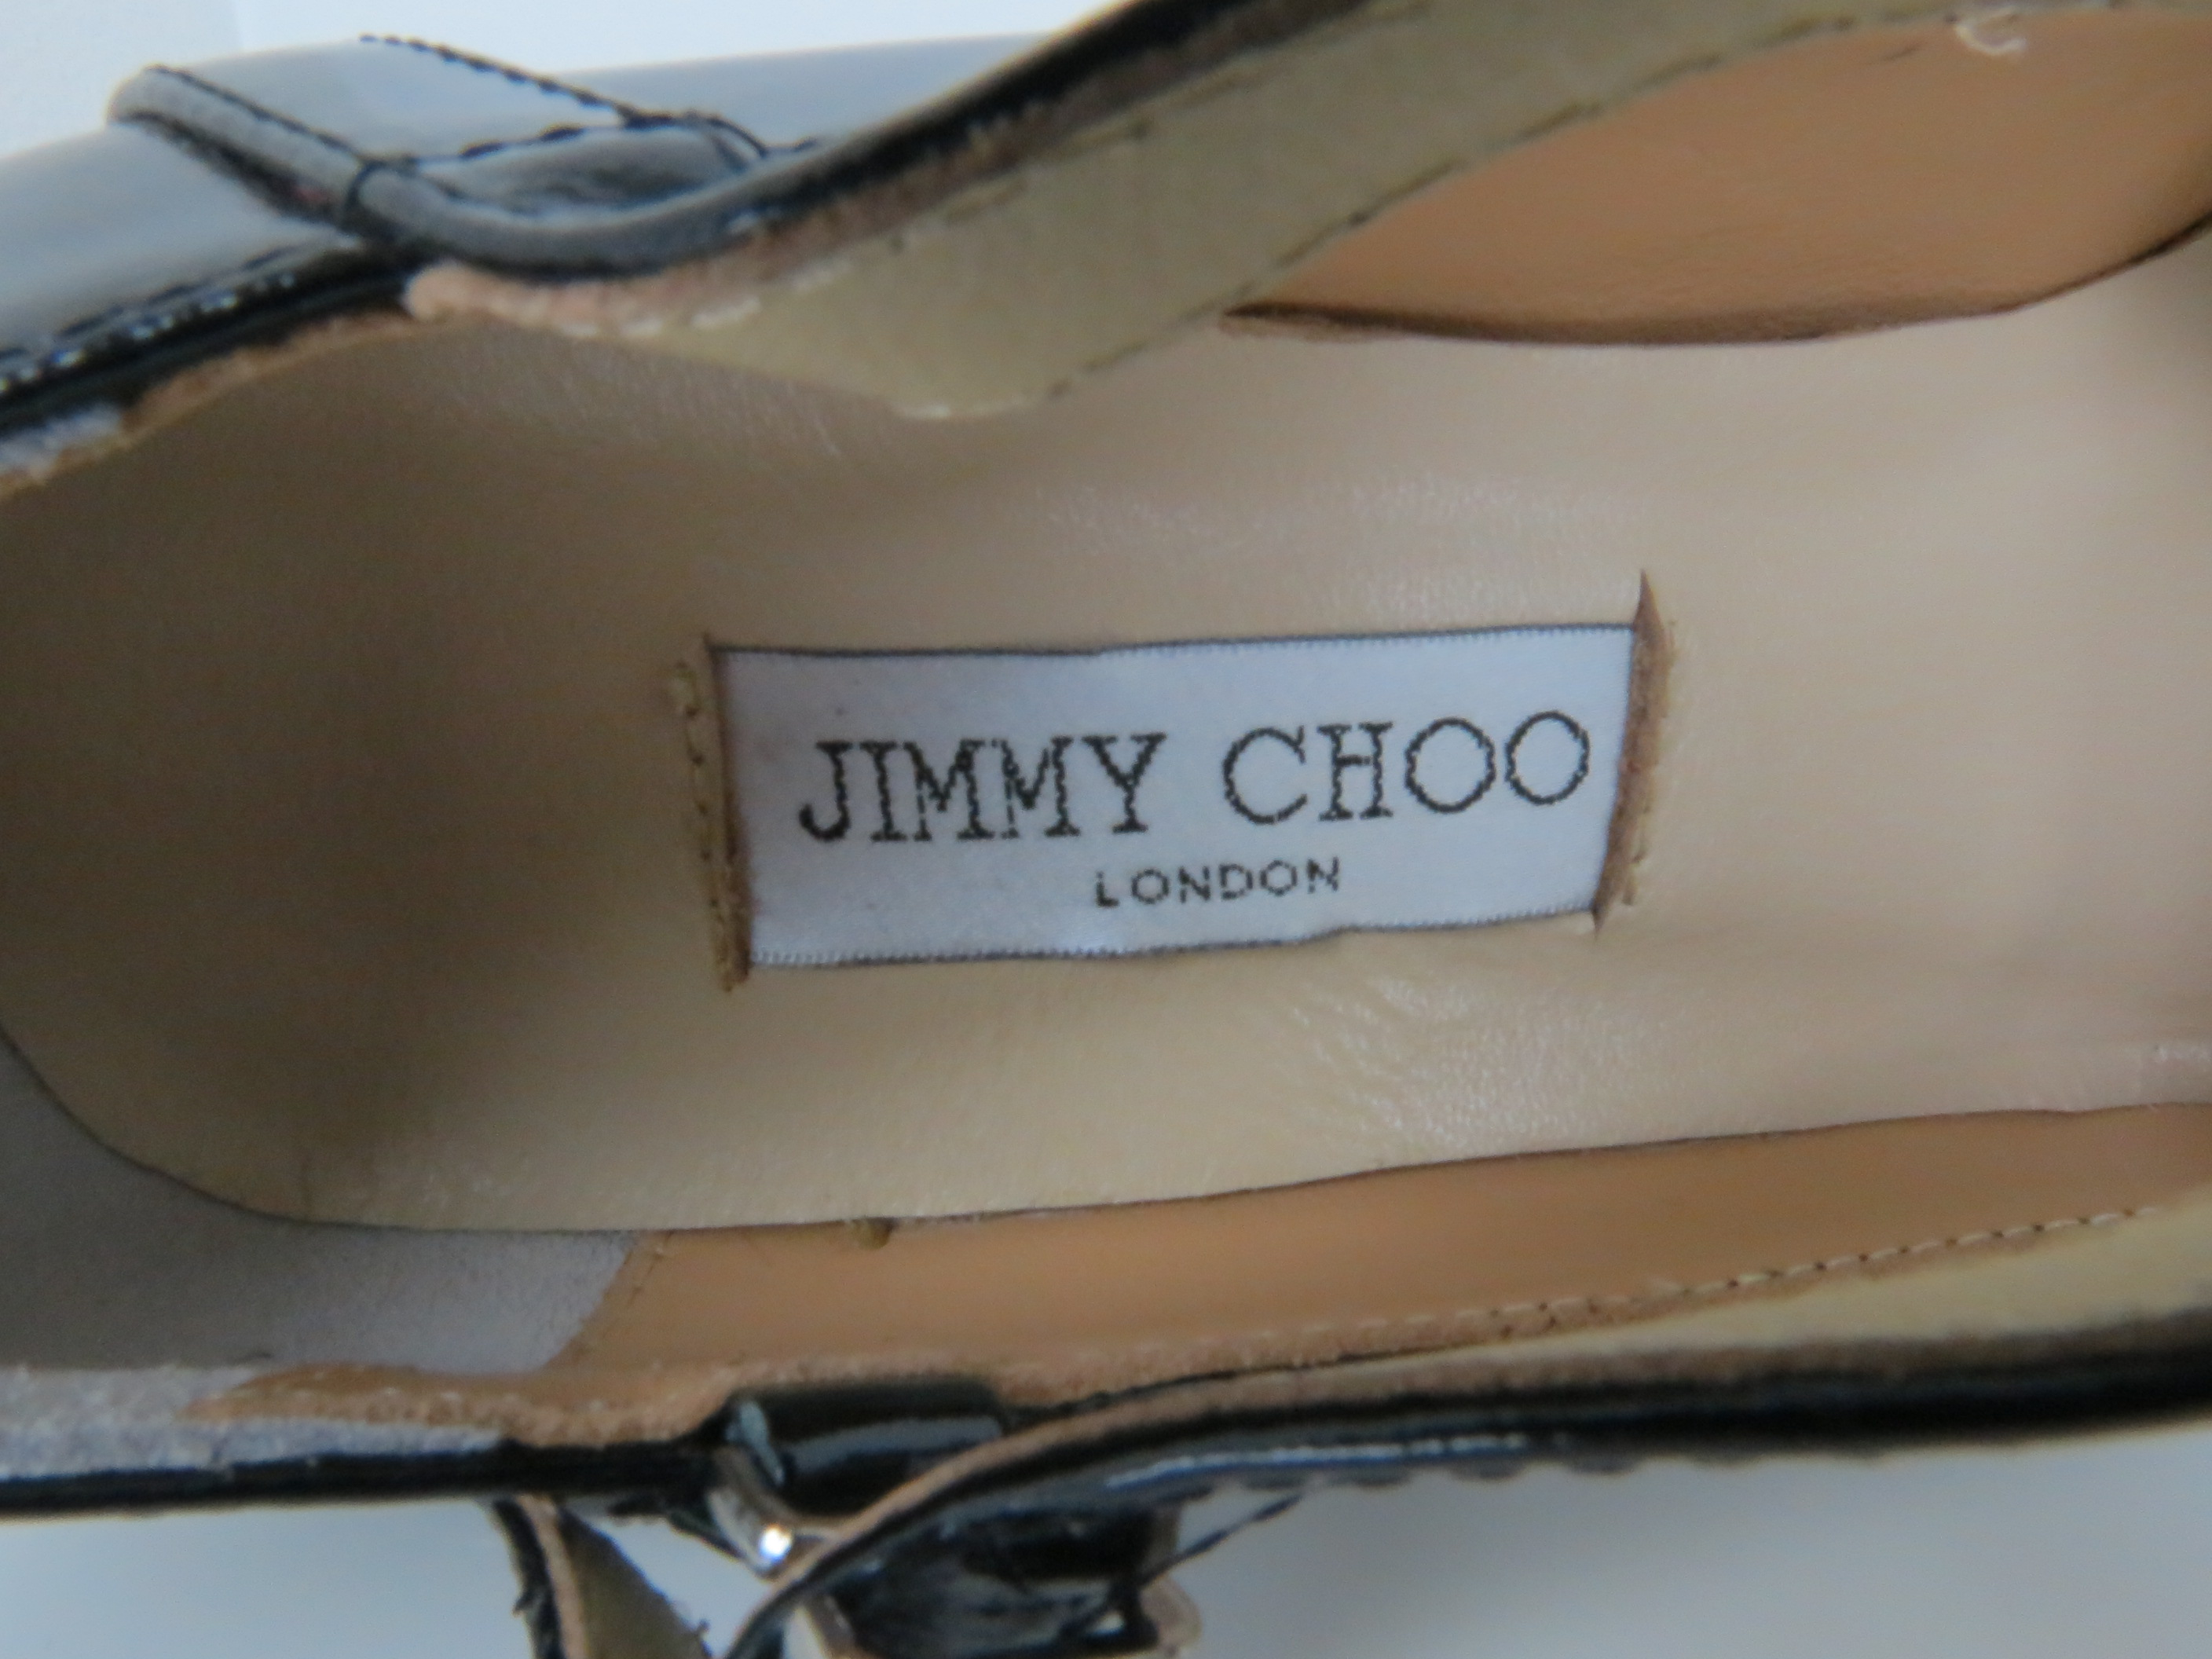 d95247c5df Jimmy Choo Purses Fake Or Real - Best Purse Image Ccdbb.Org